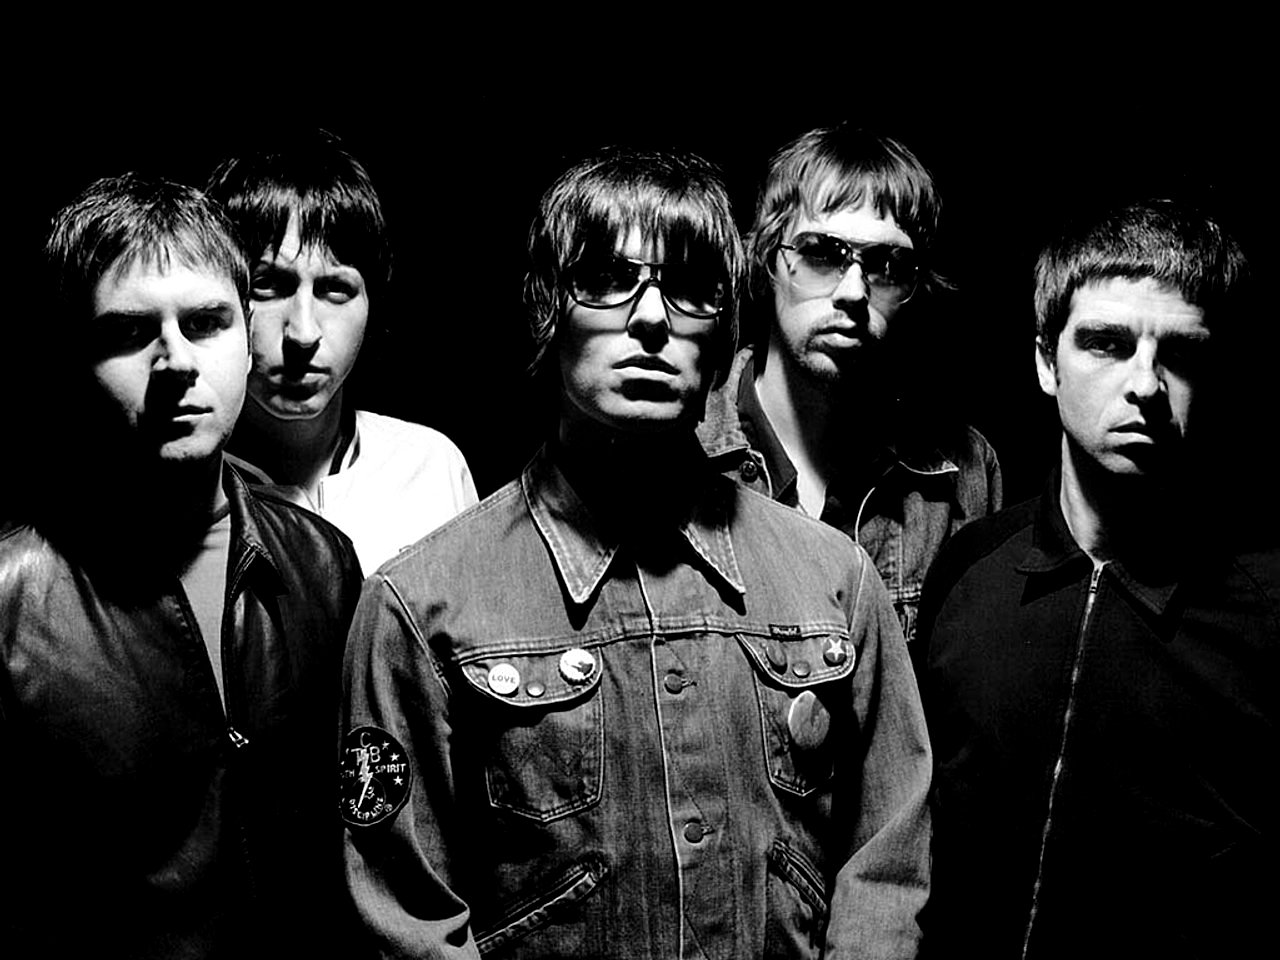 Oasis Documentary, Supersonic: Trailer Revealed